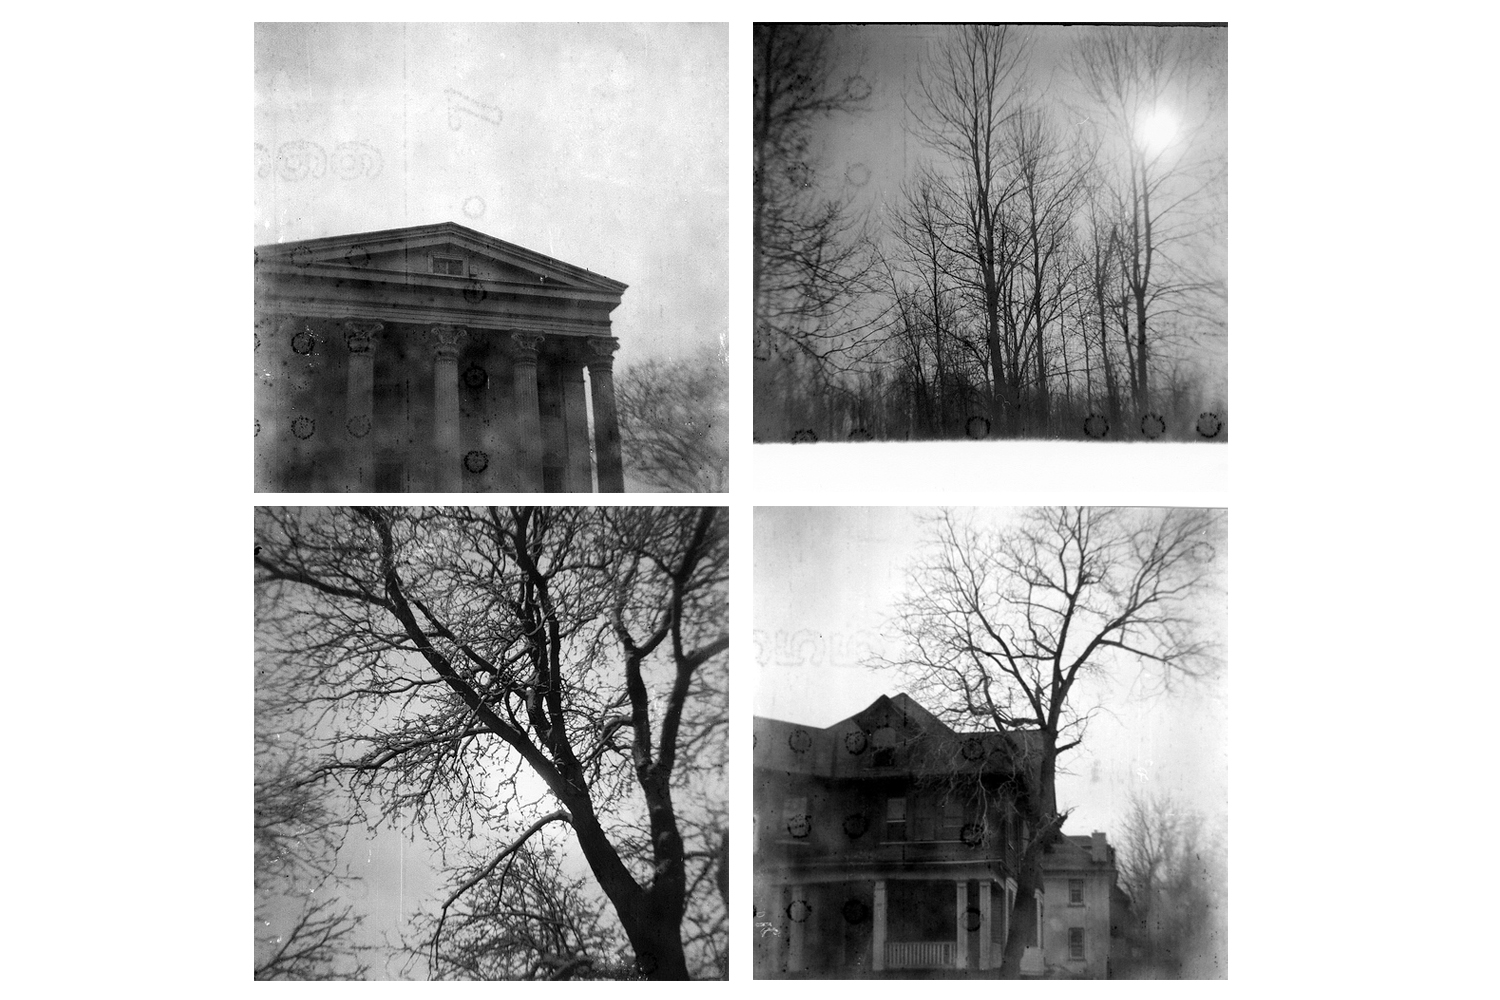 Expired Film Series: The Haunting